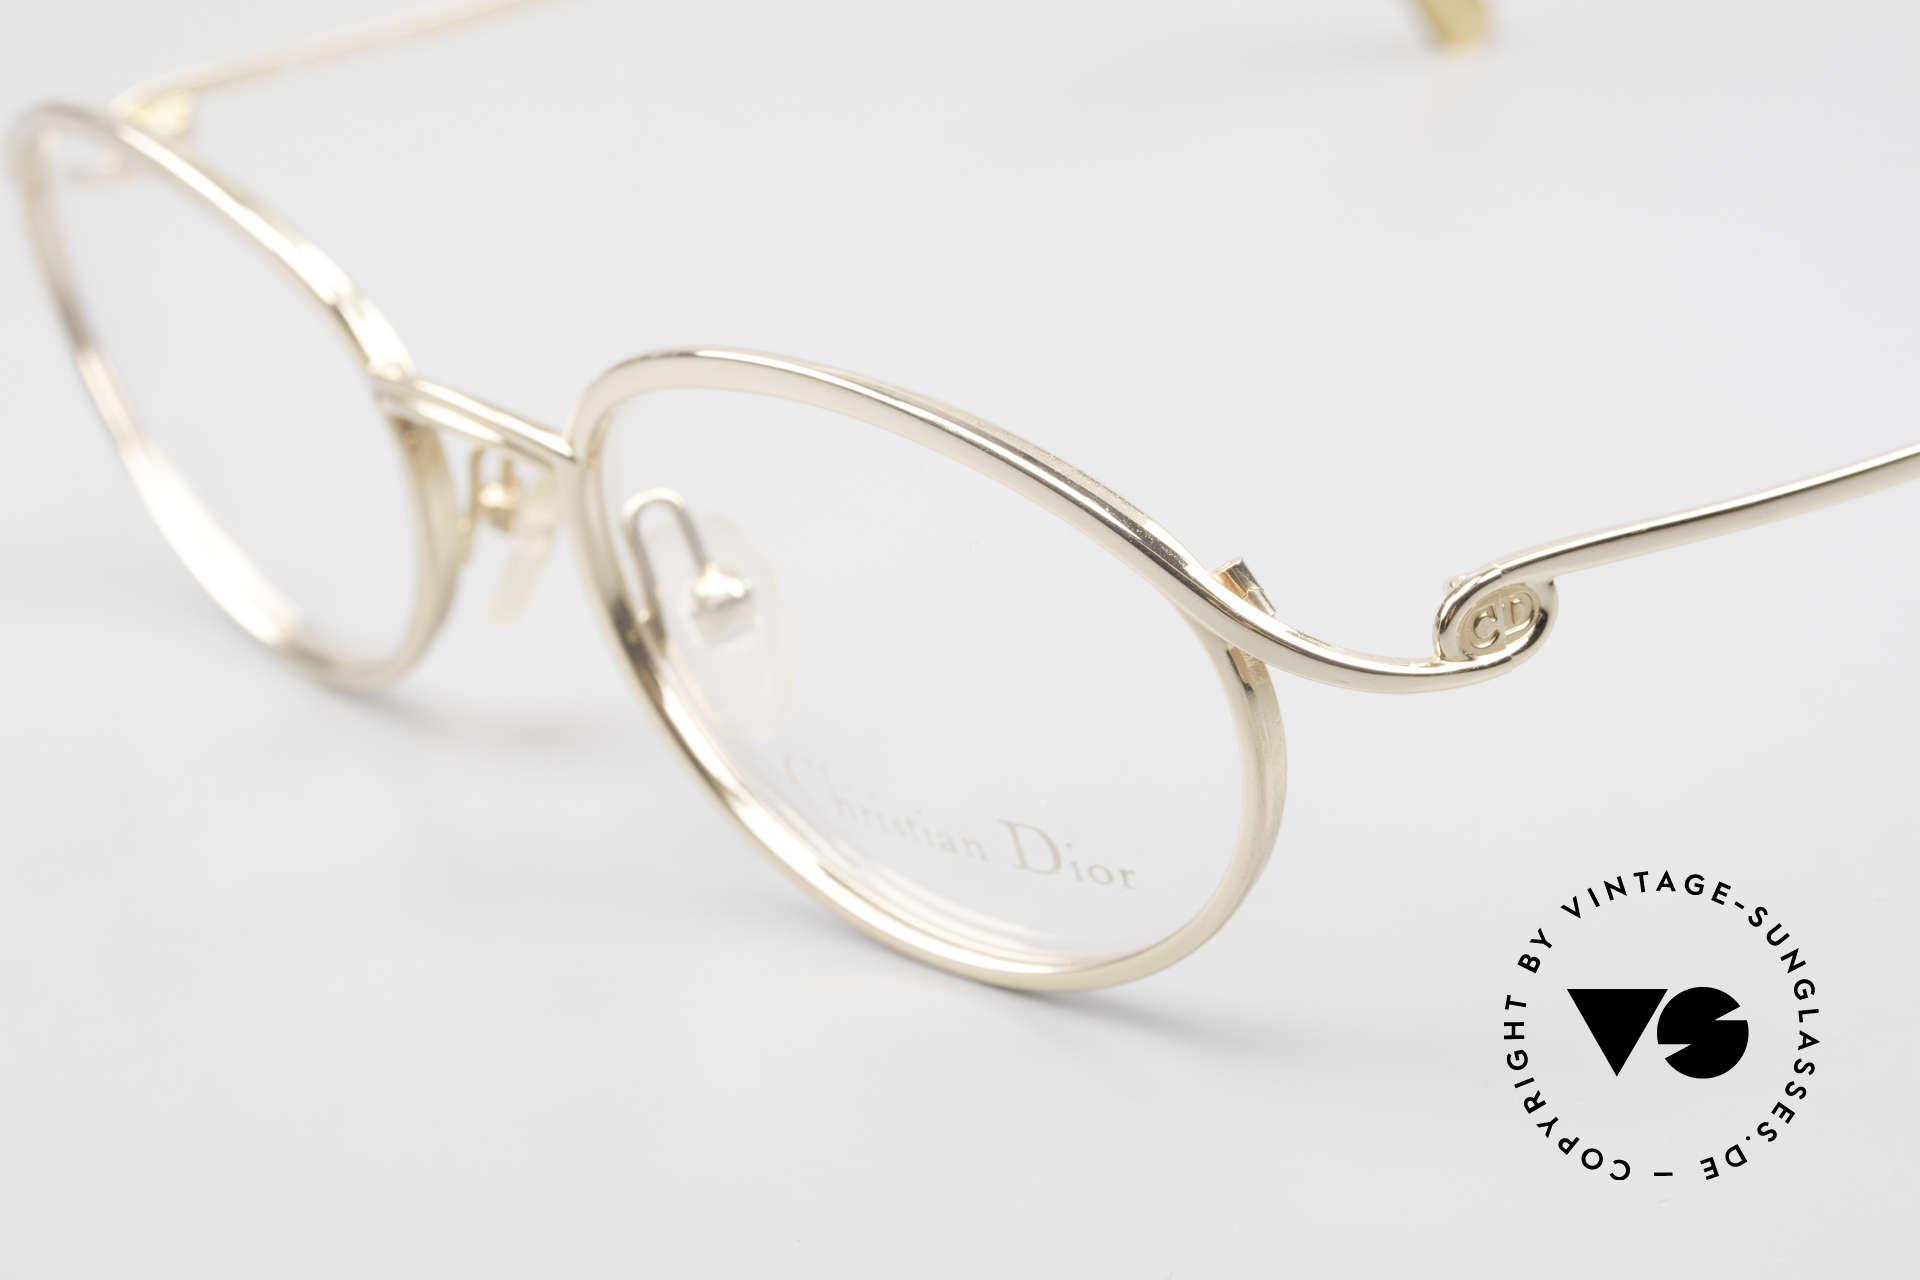 Christian Dior 2939 Ladies 90's Frame Gold Plated, unworn (like all our vintage C. Dior eyeglasses), Made for Women